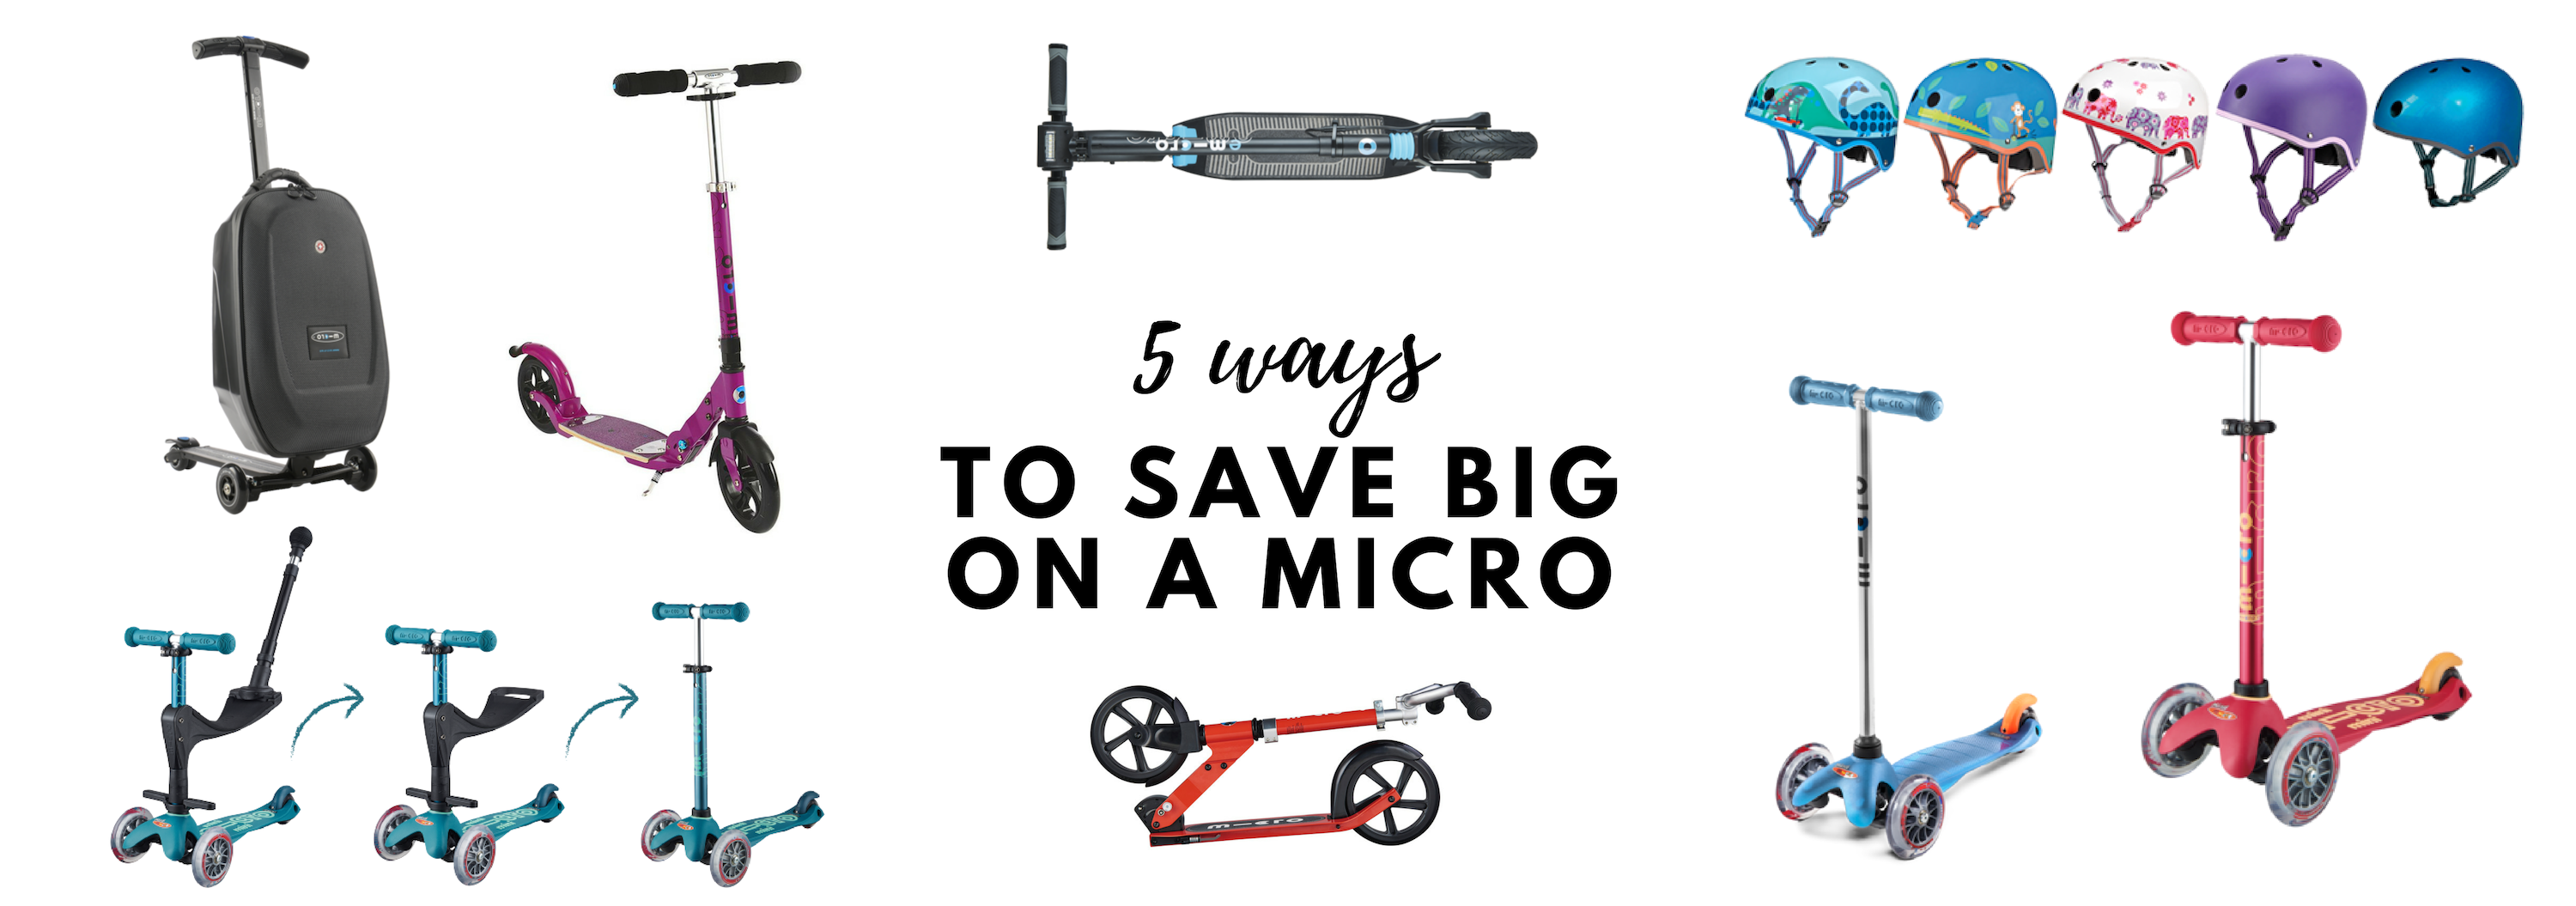 5 ways to save big on a Micro